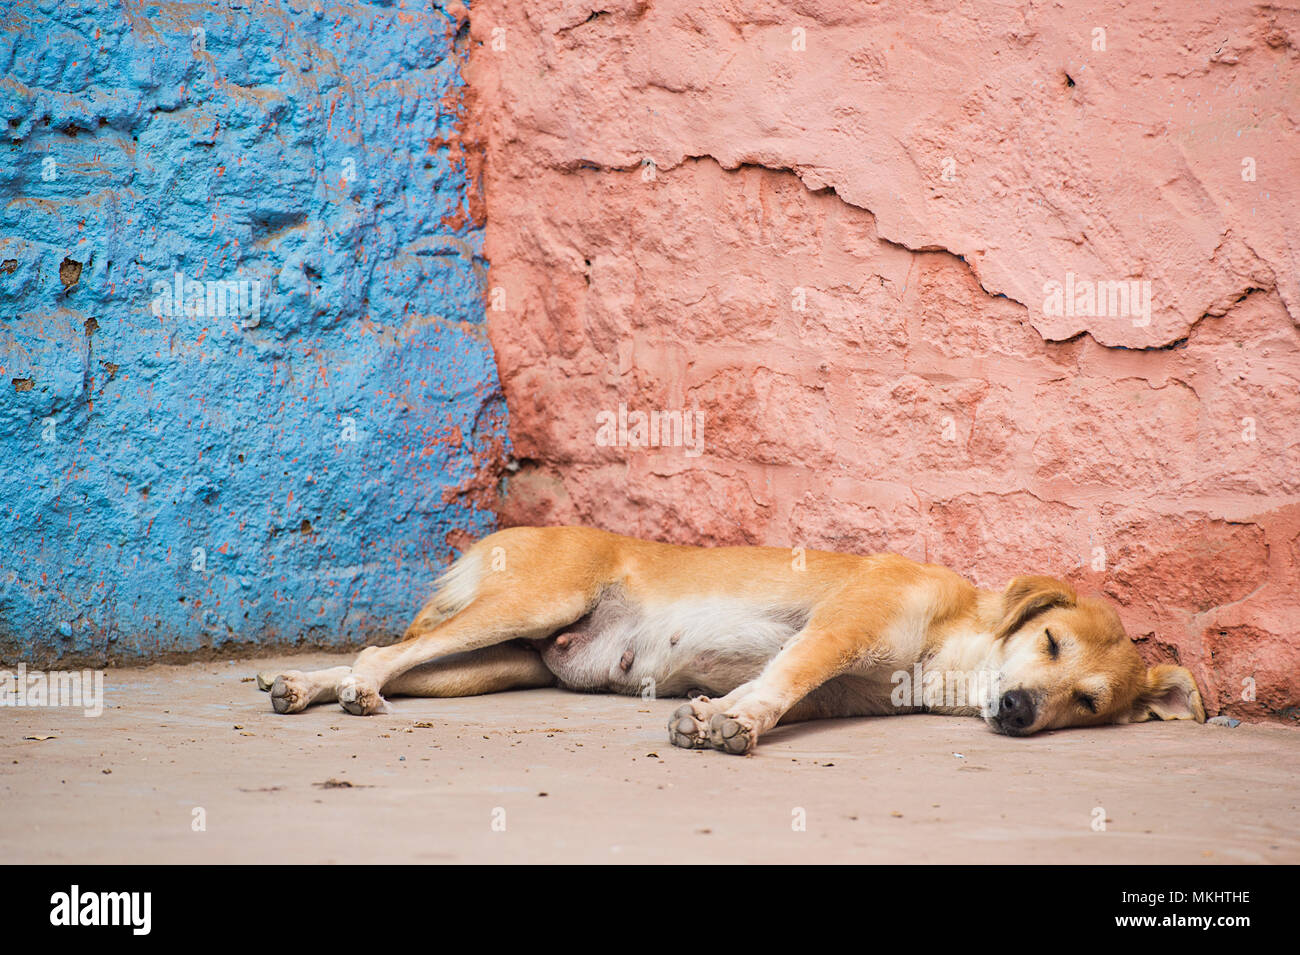 A cute dog is sleeping in front of a blue and pink colored wall in India. - Stock Image